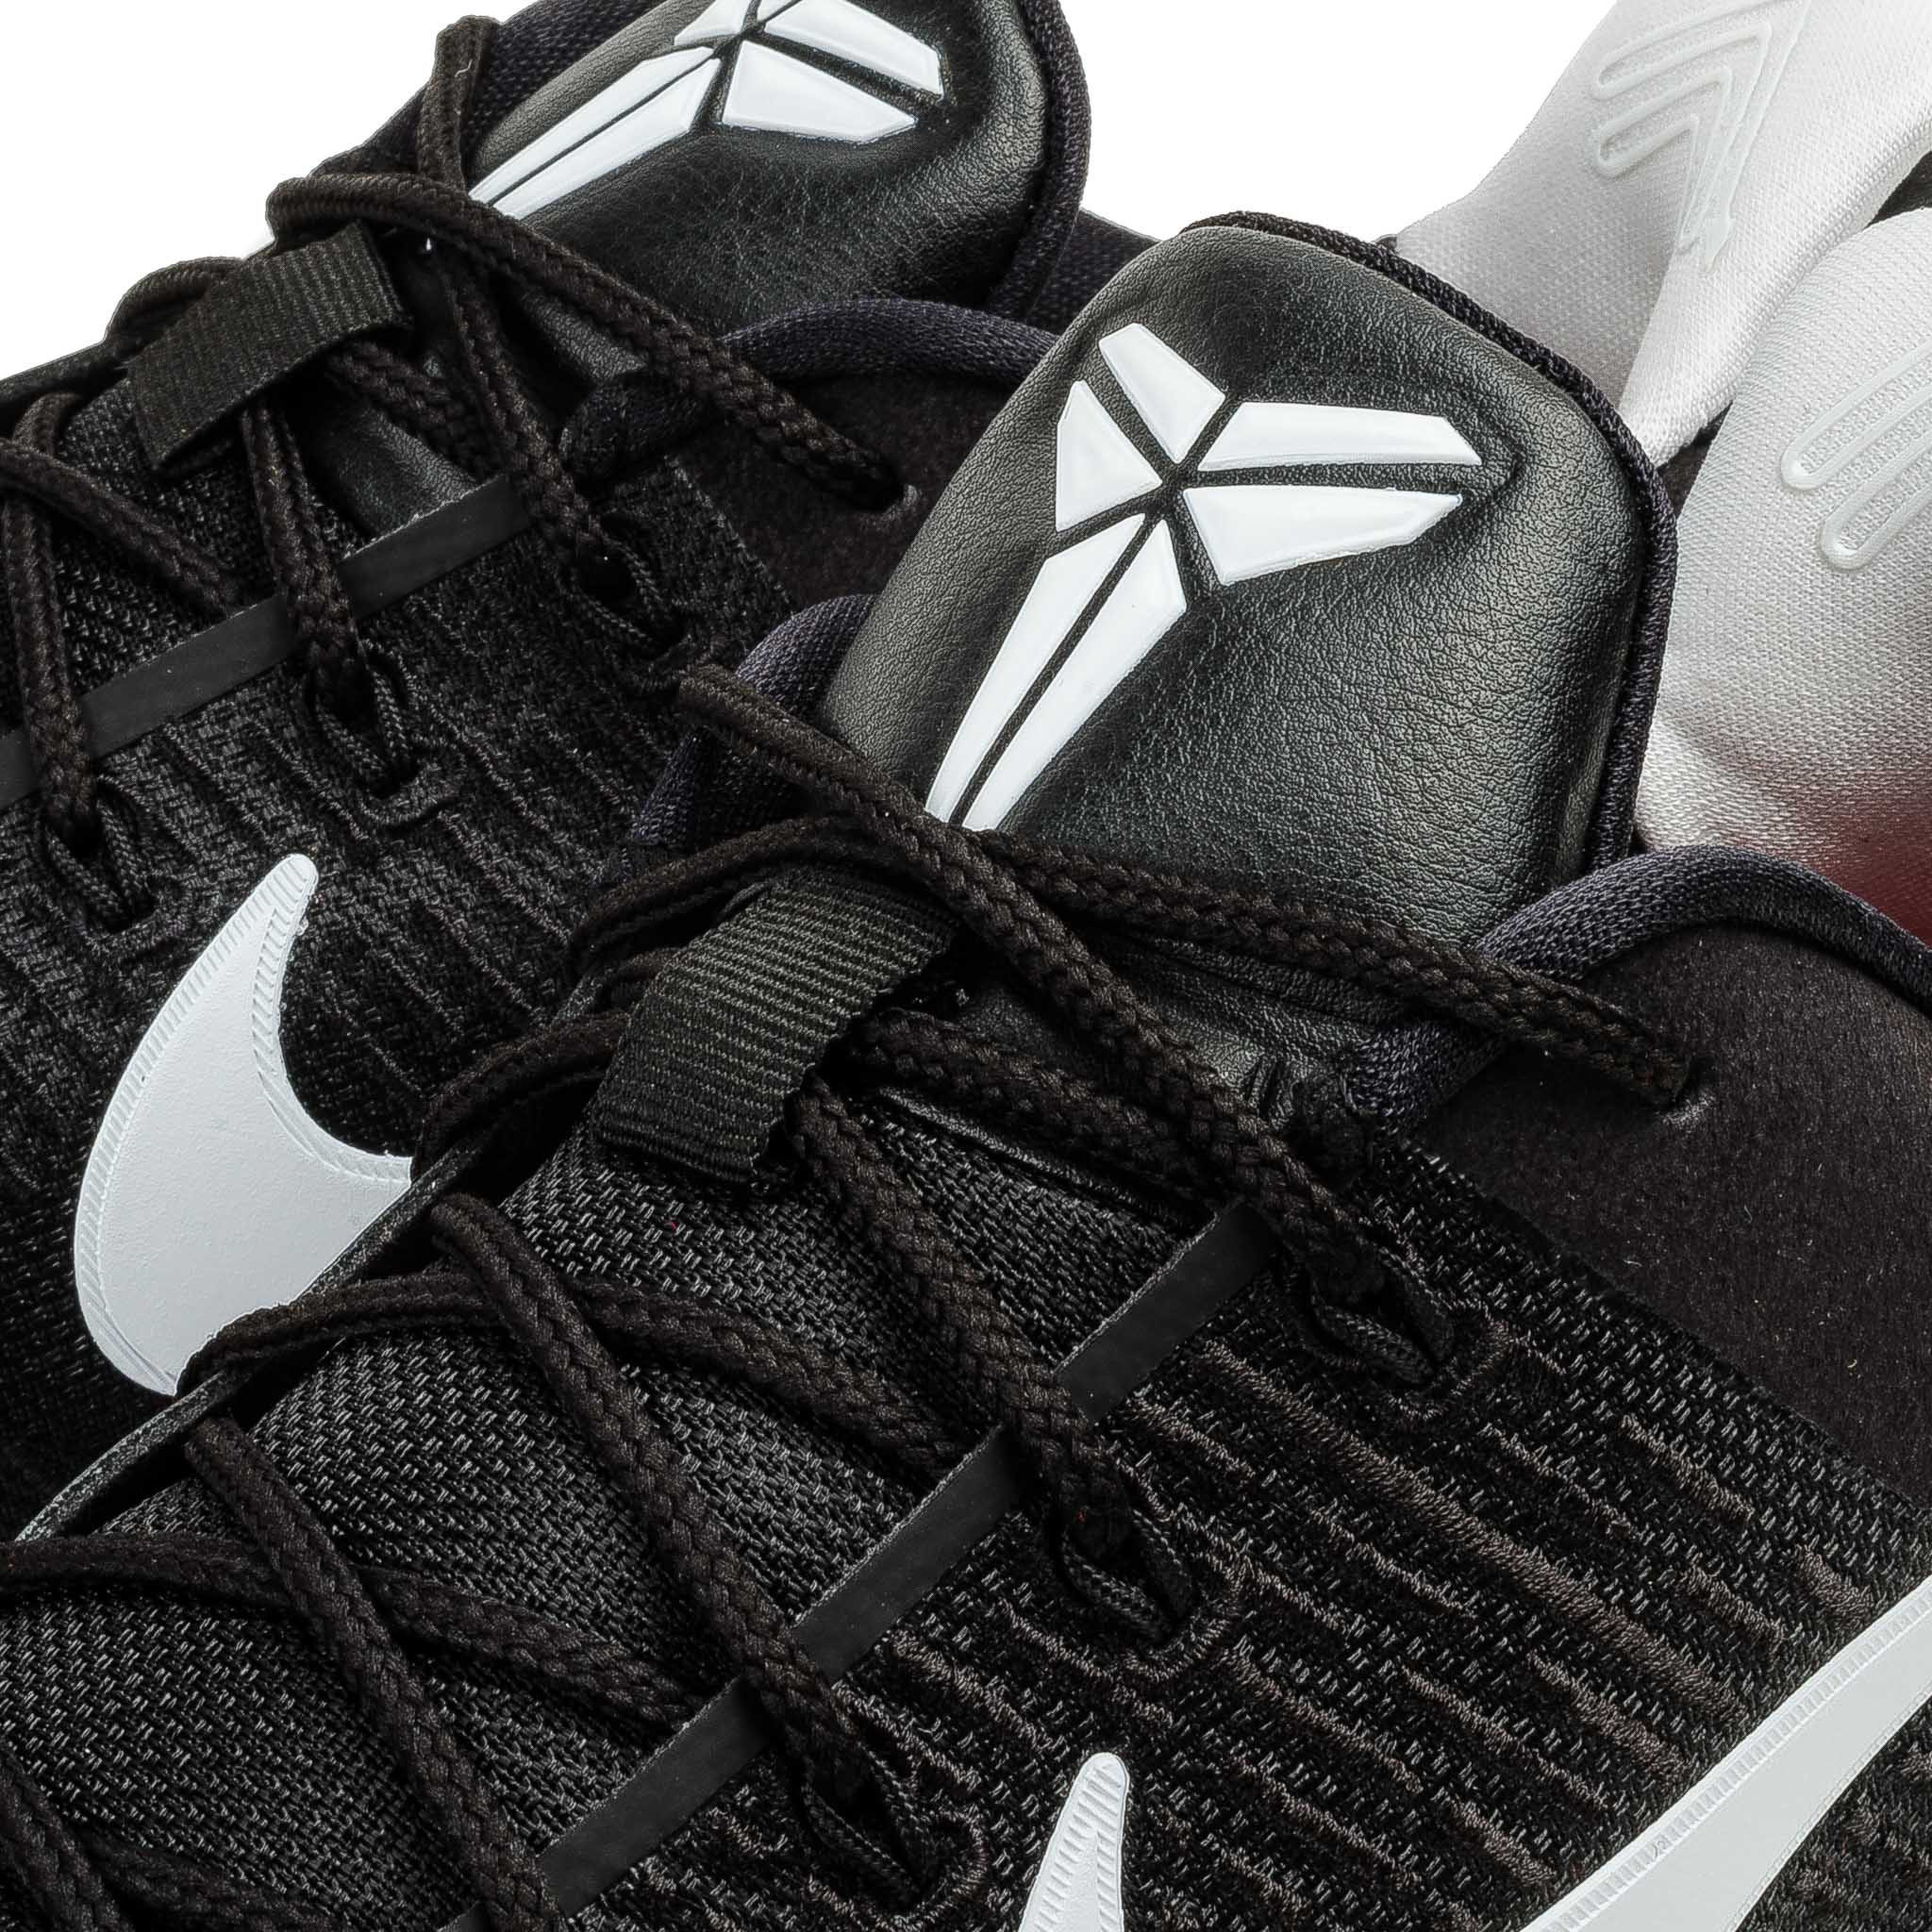 get-up-close-and-personal-with-the-black-white-nike-kobe-a-d-4